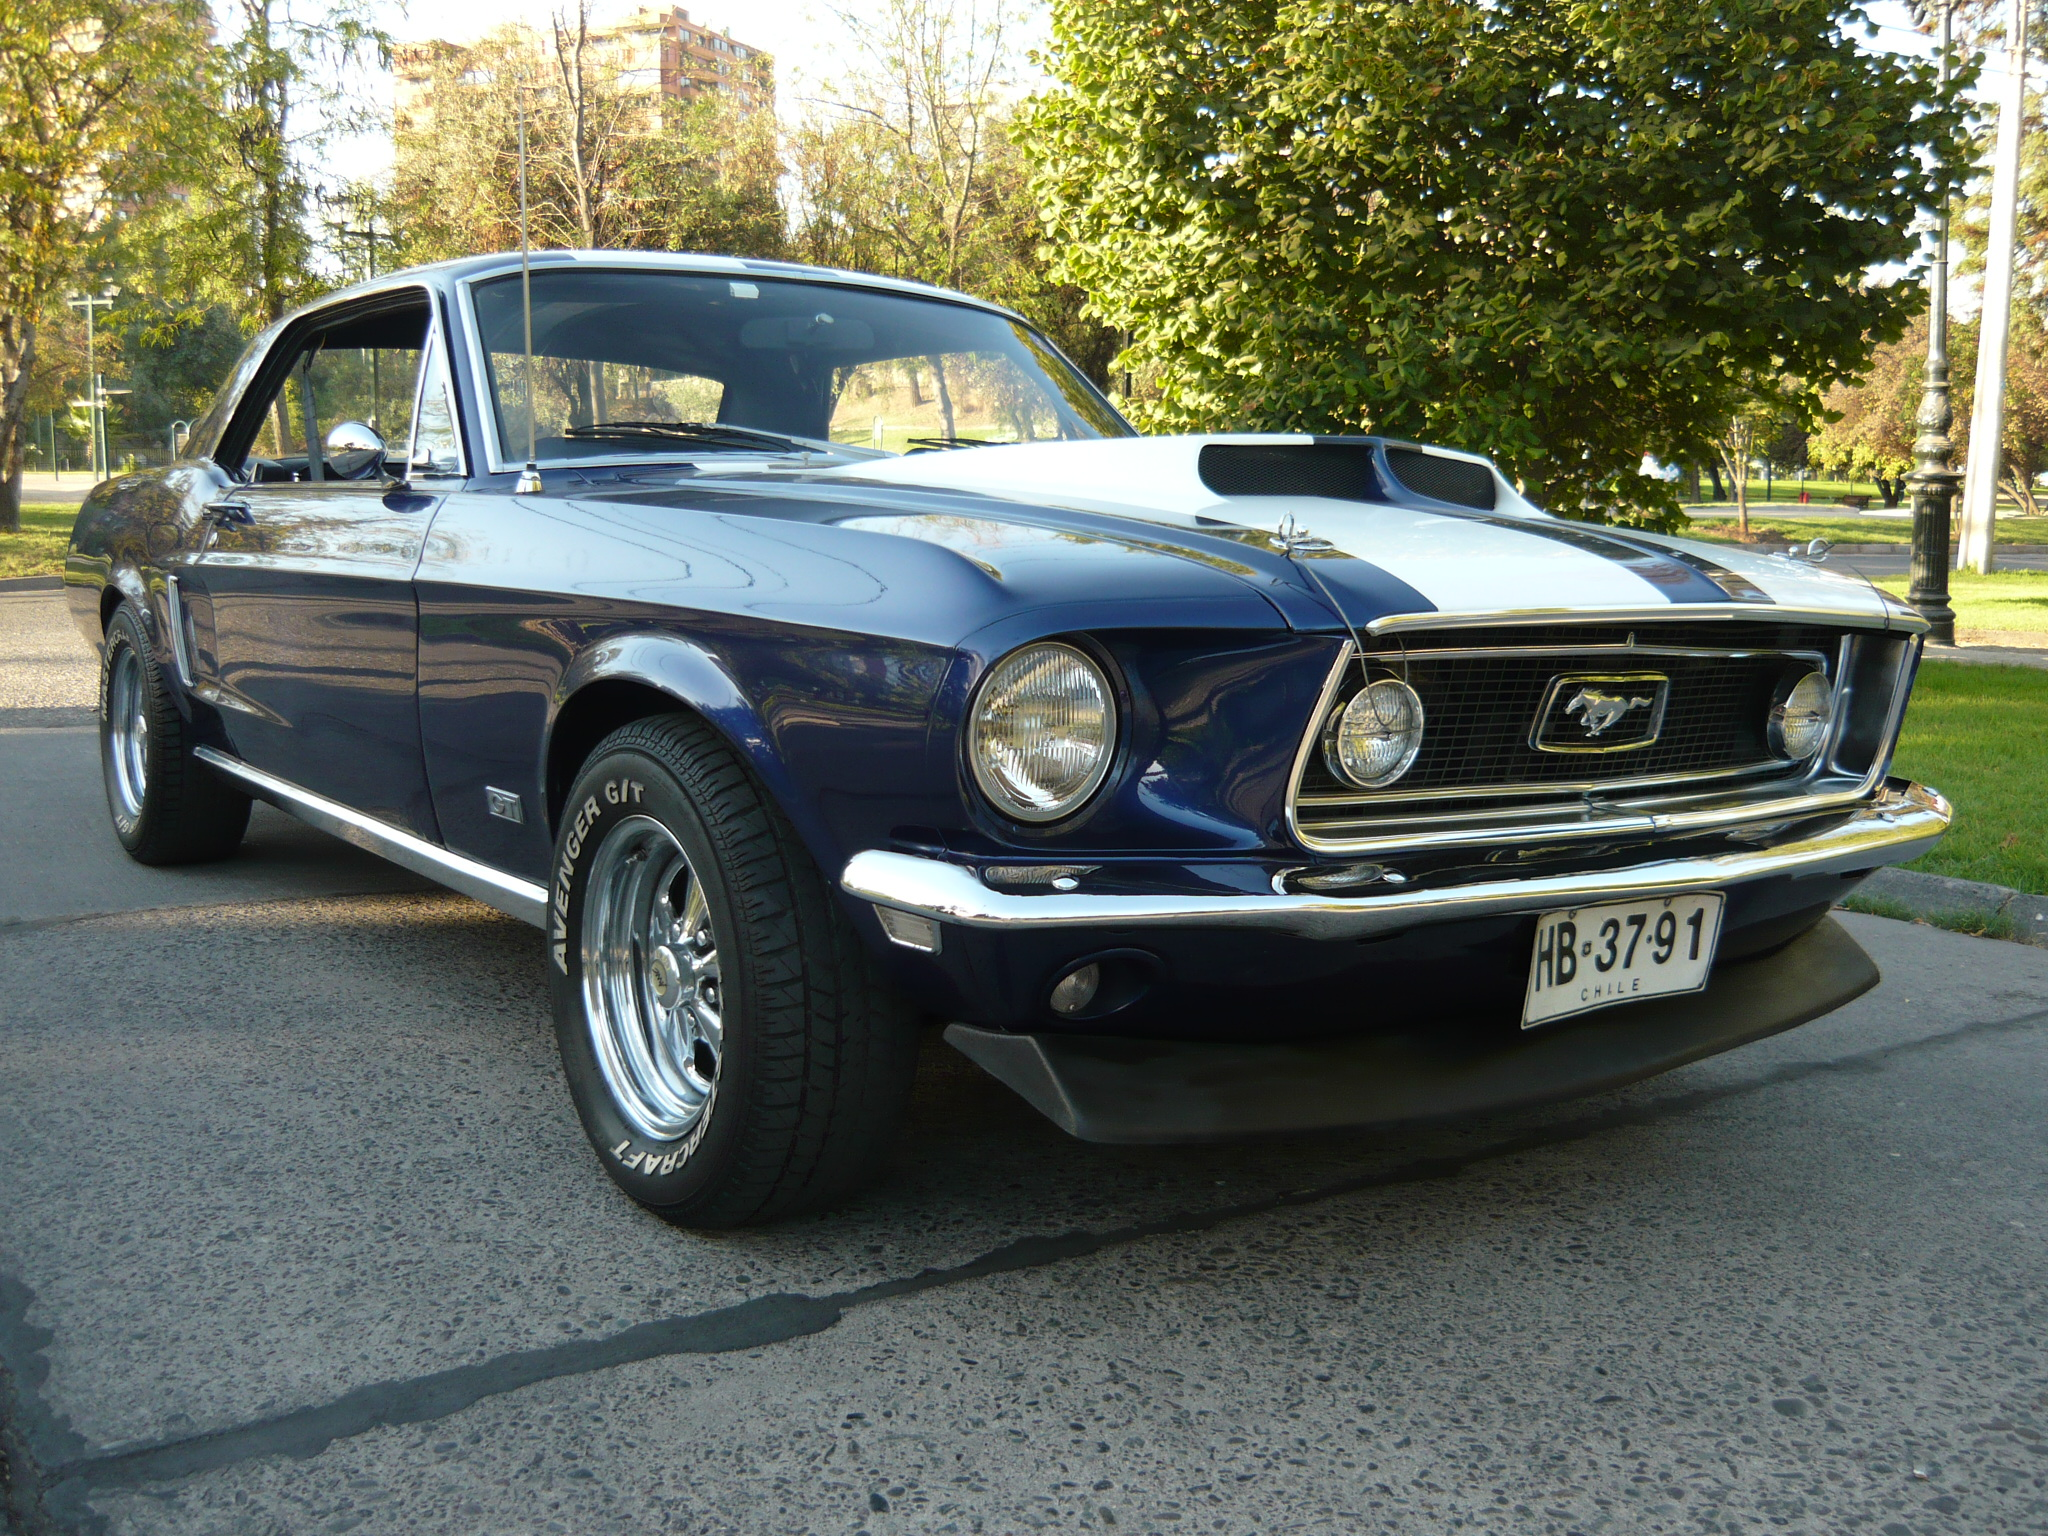 Ford Mustang GT 1968 - AutoMark